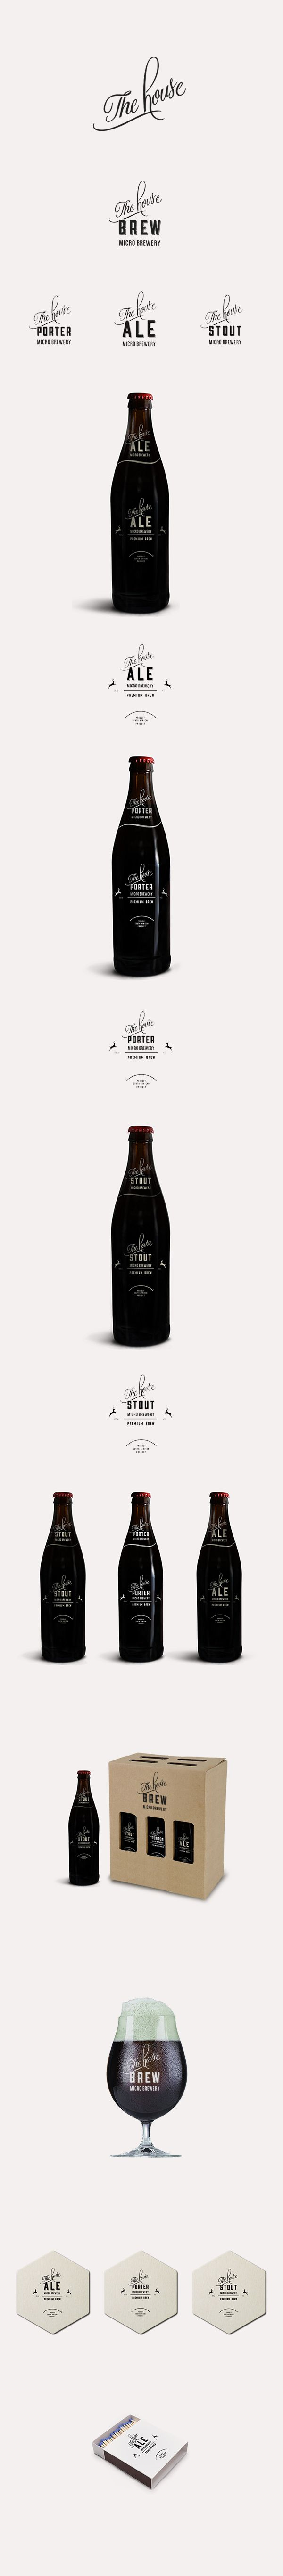 The House Brewery: CI & Packaging design by Louwrens Venter